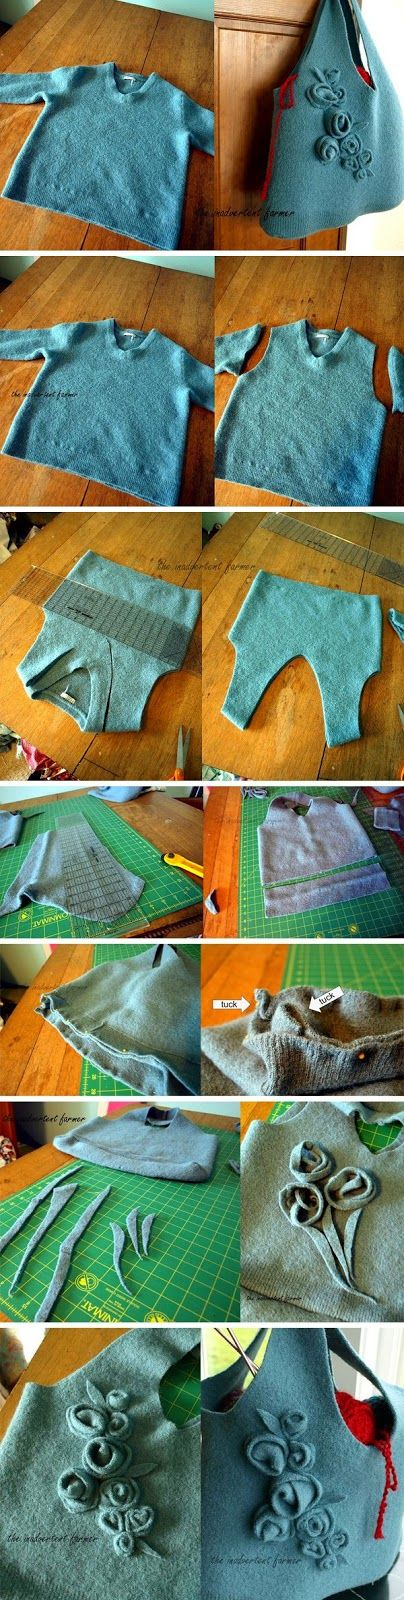 ART WITH QUIANE - Paps, Molds, EVA, Felt, seams, 3D Fofuchas: sweater Stock Exchange Step by Step